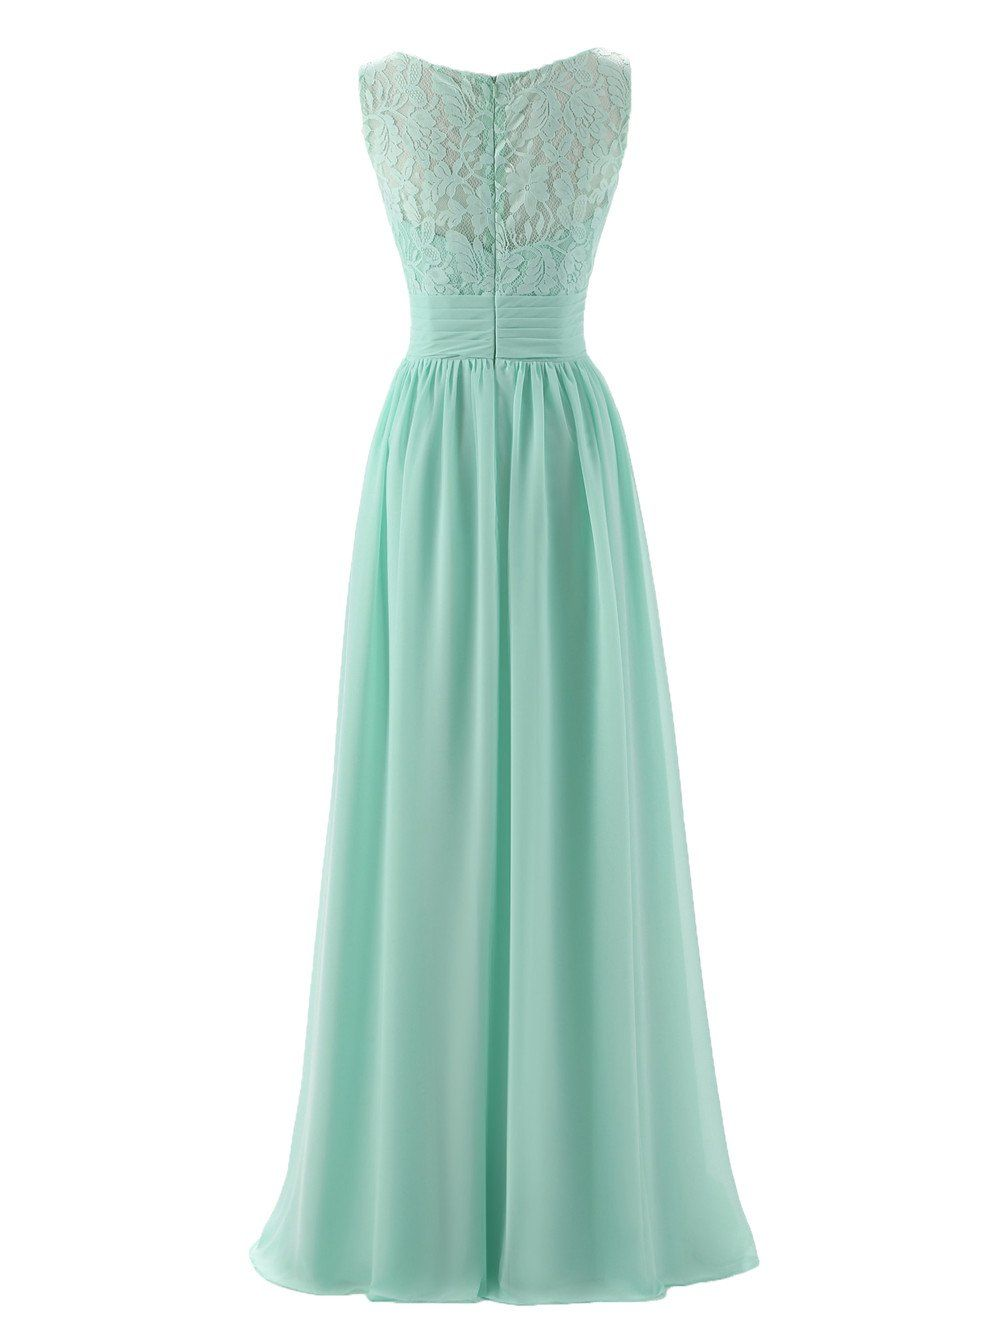 Aline vneck chiffon long empire bridesmaid dresses simple prom